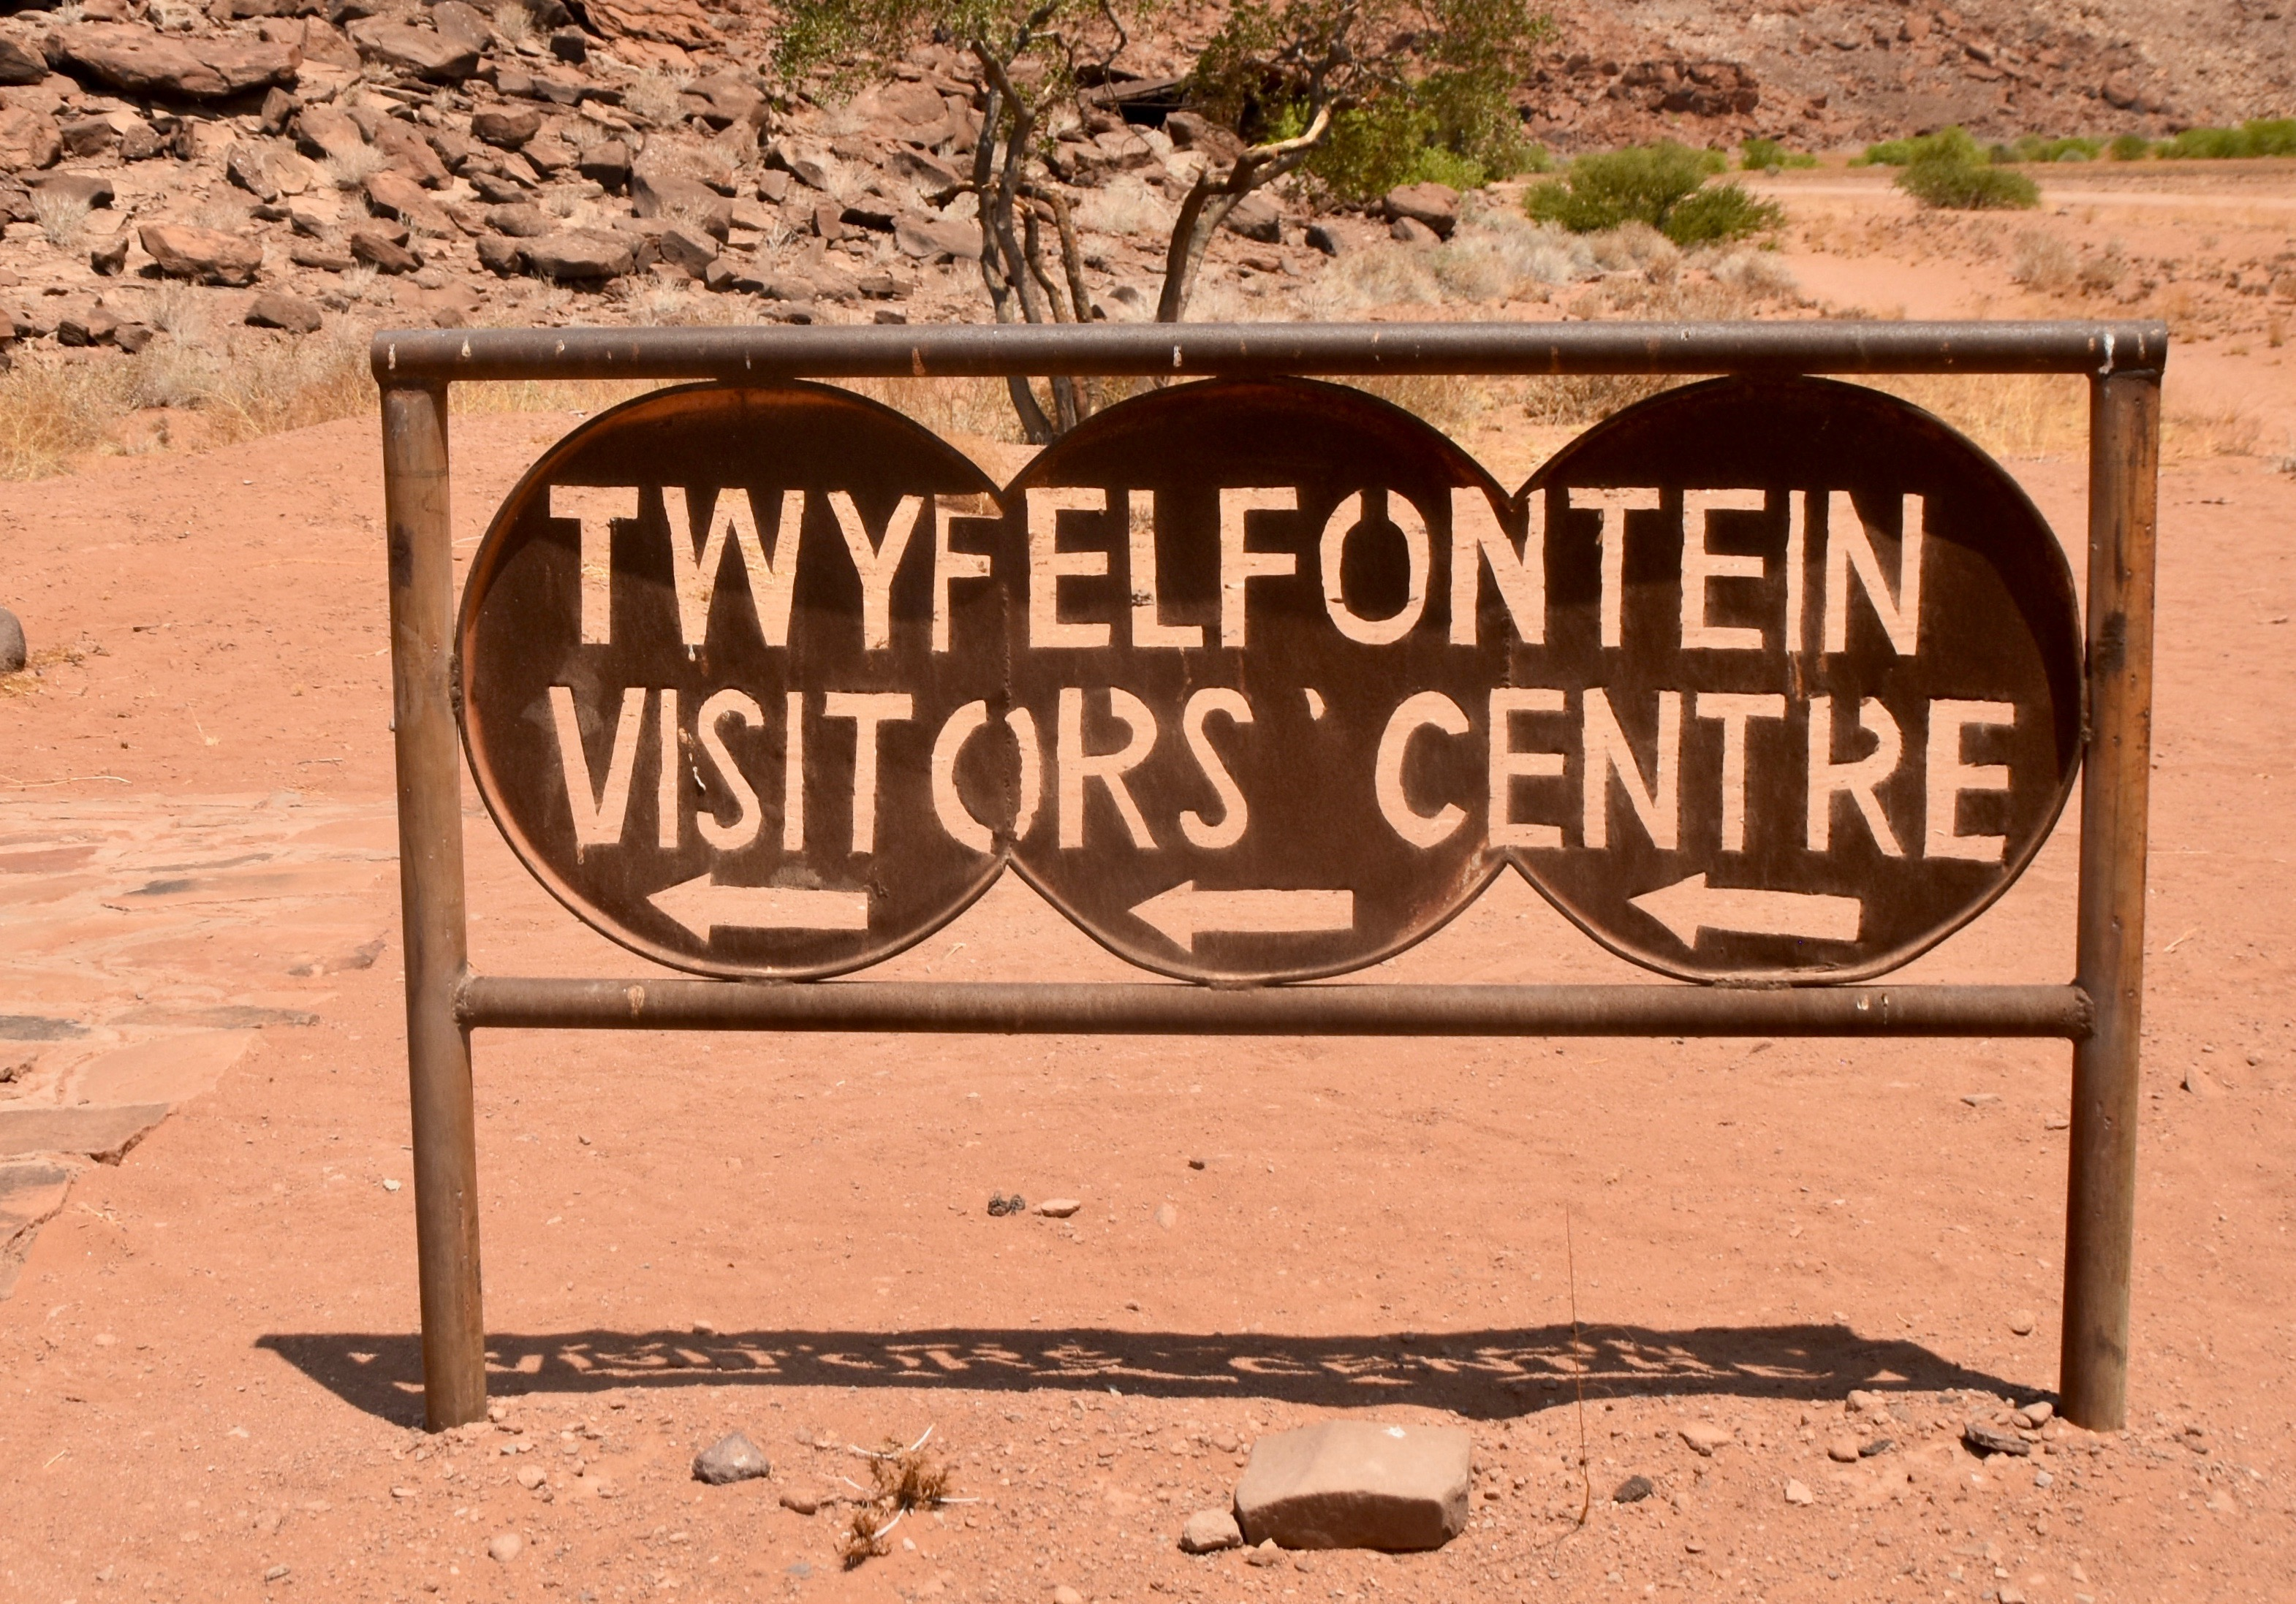 Visitor's Centre Sign, Twyfelfontein